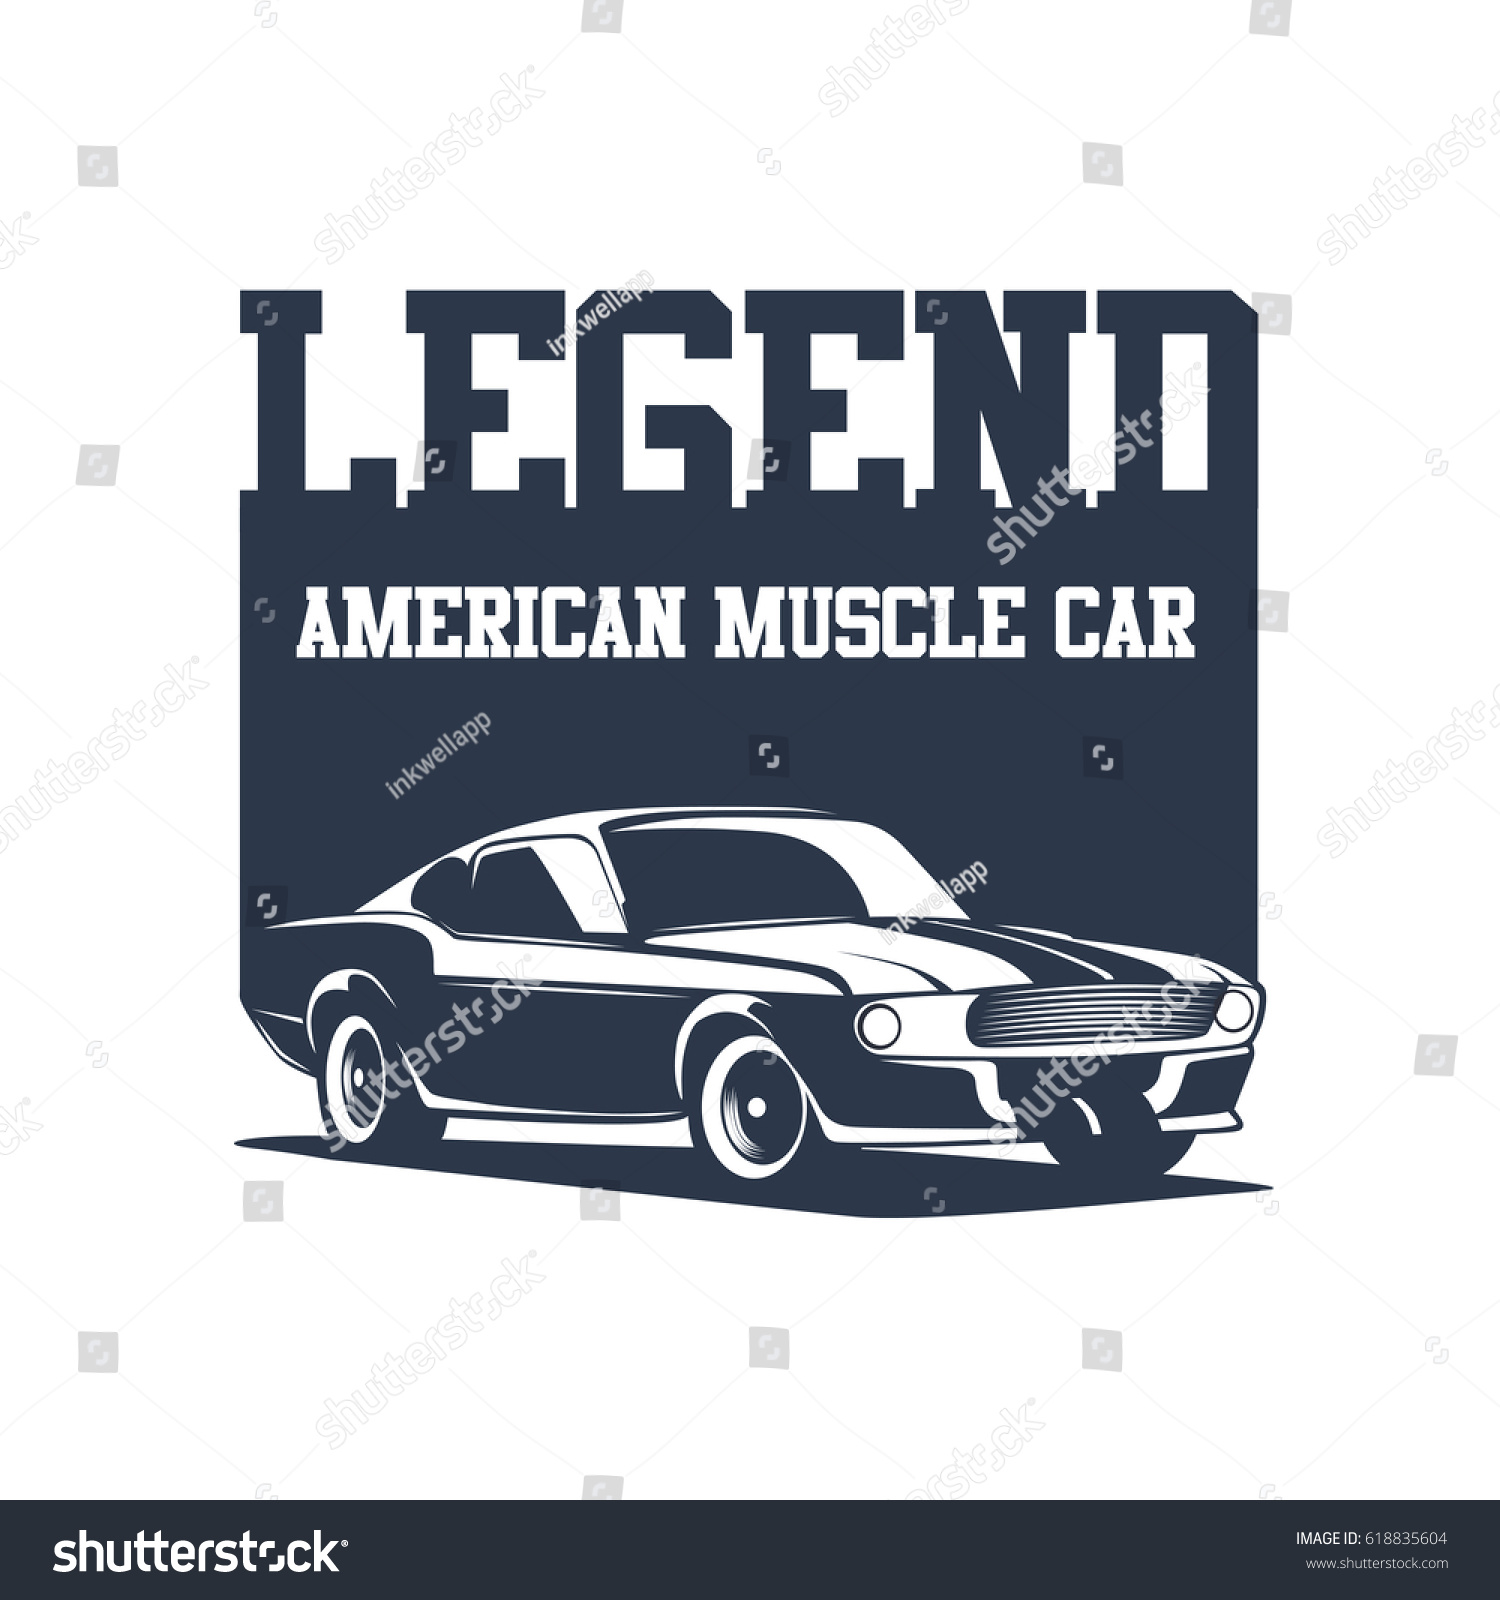 Old School Muscle Cars Inspired Stock Vector 618835604 - Shutterstock